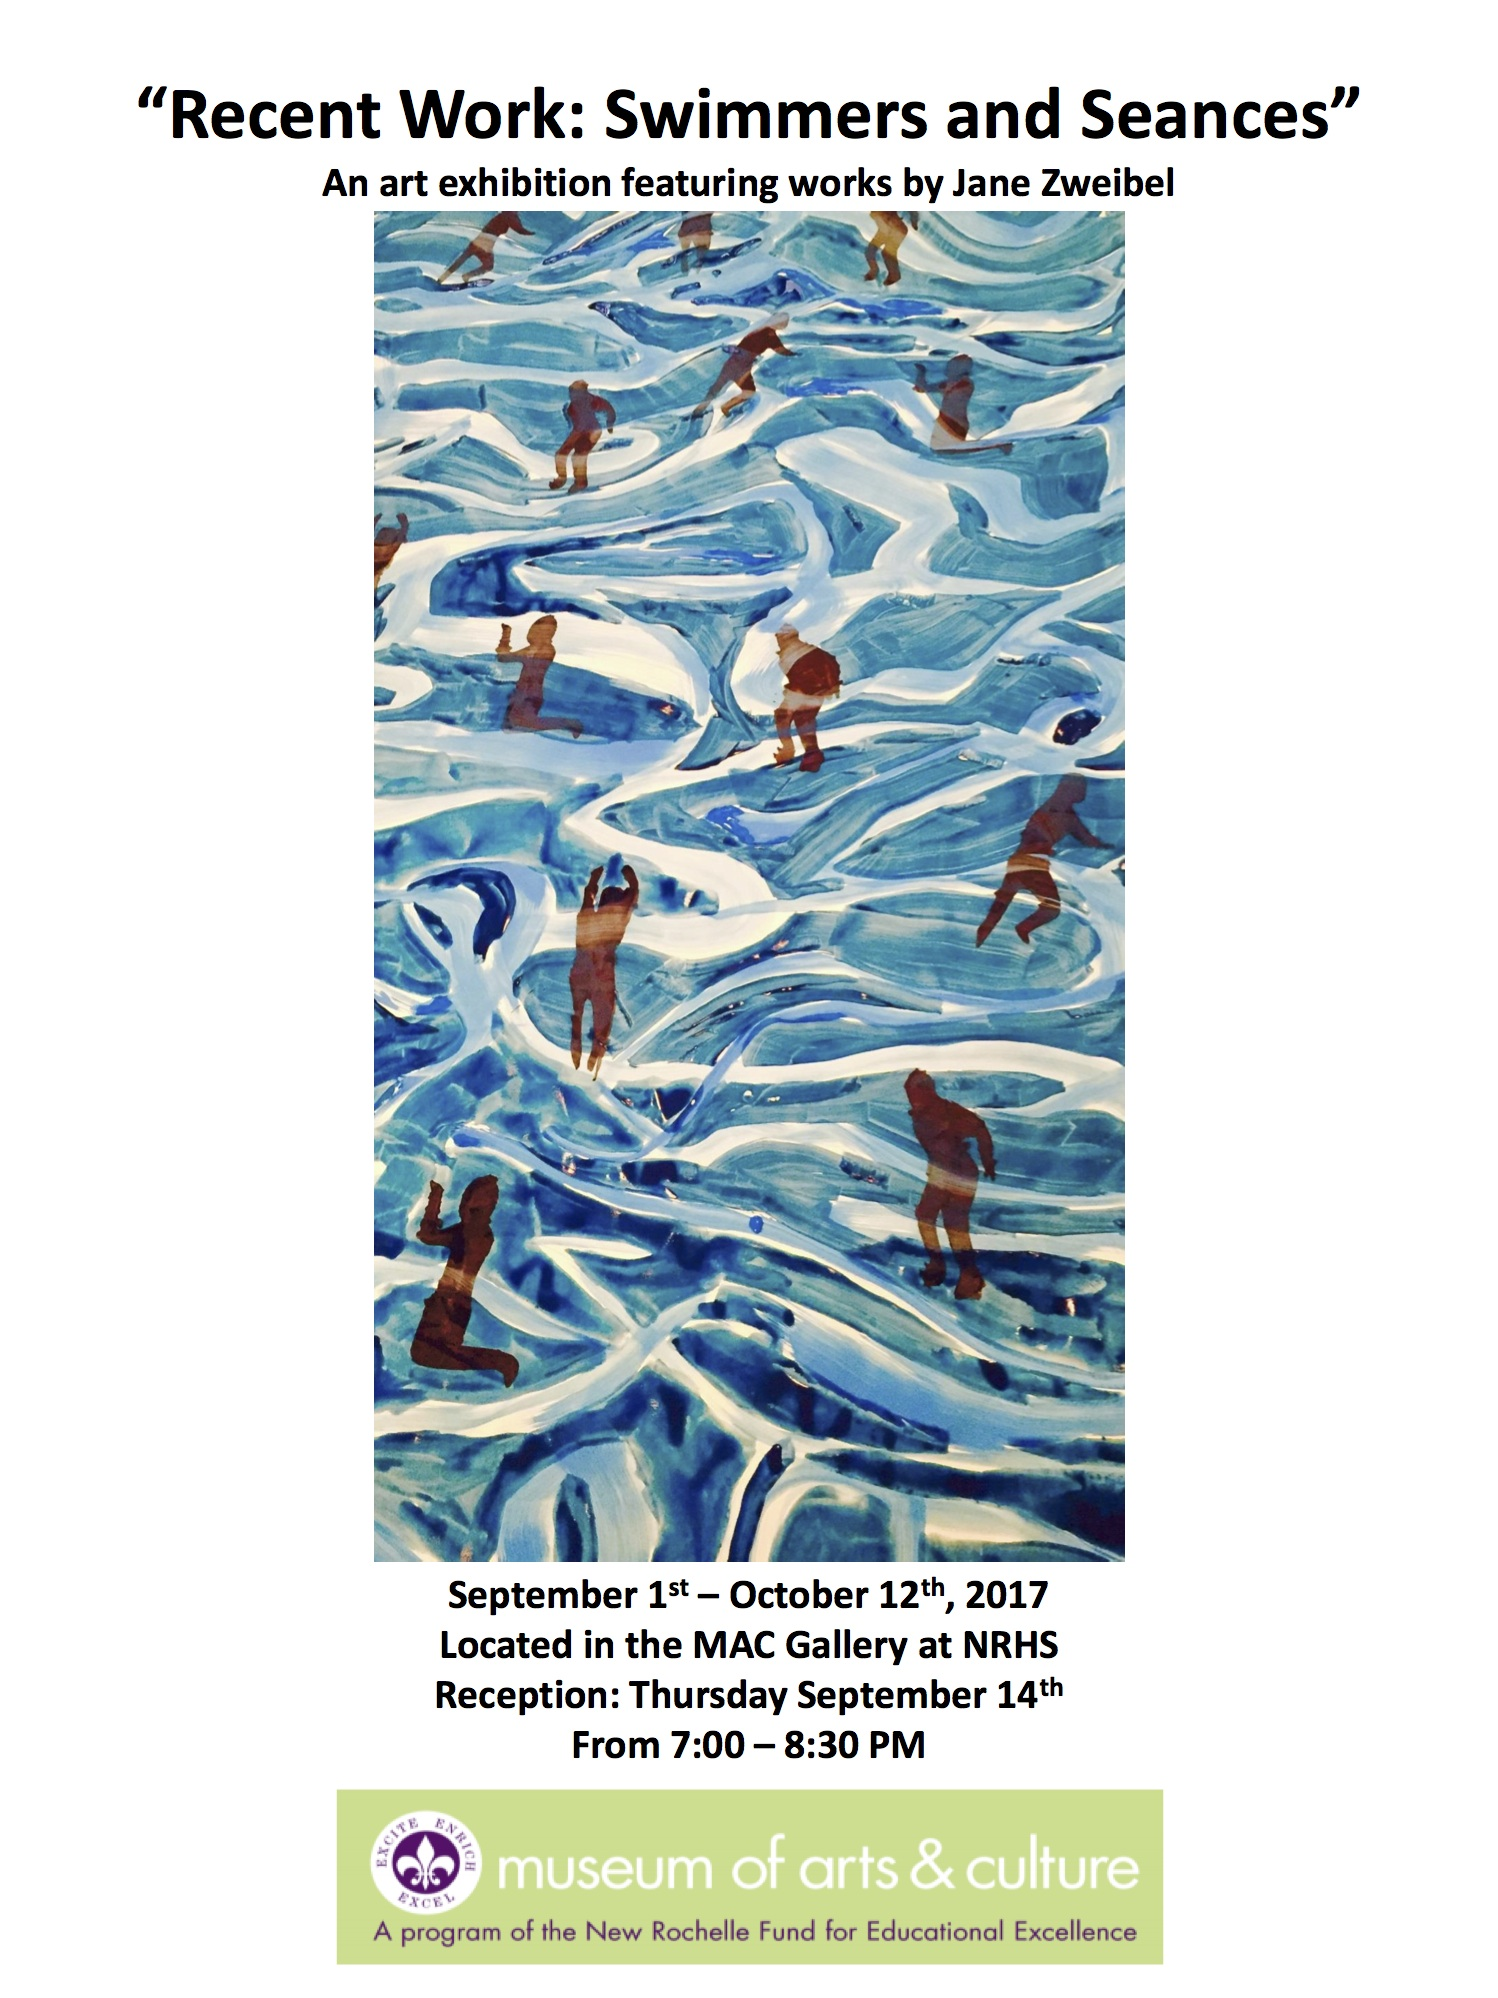 Recent Works – Swimmers and Seances